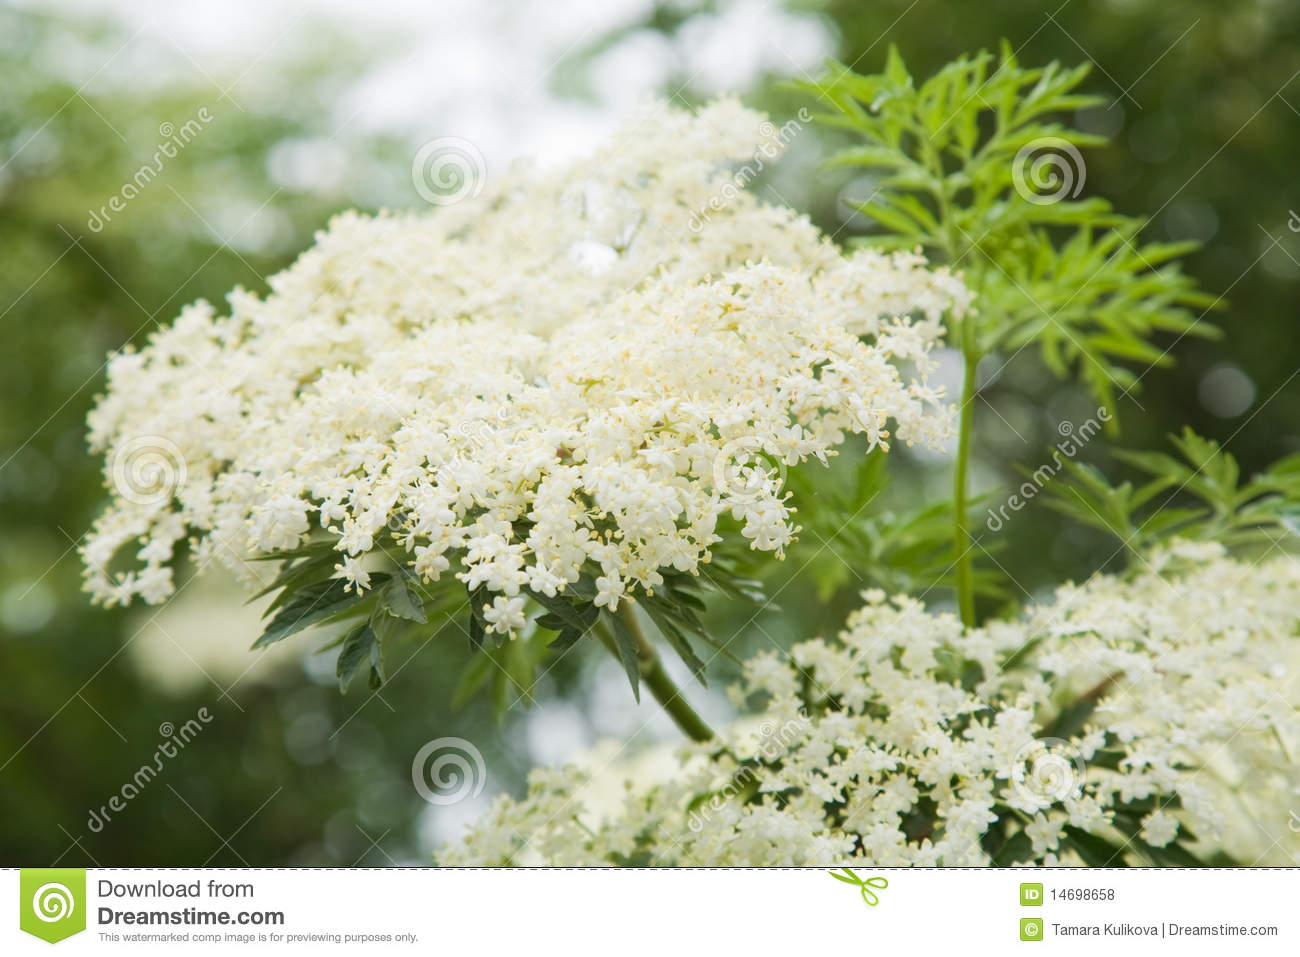 Download Sambucus Nigra; (Black Elder) Stock Photo - Image of sambucus, flowers: 14698658